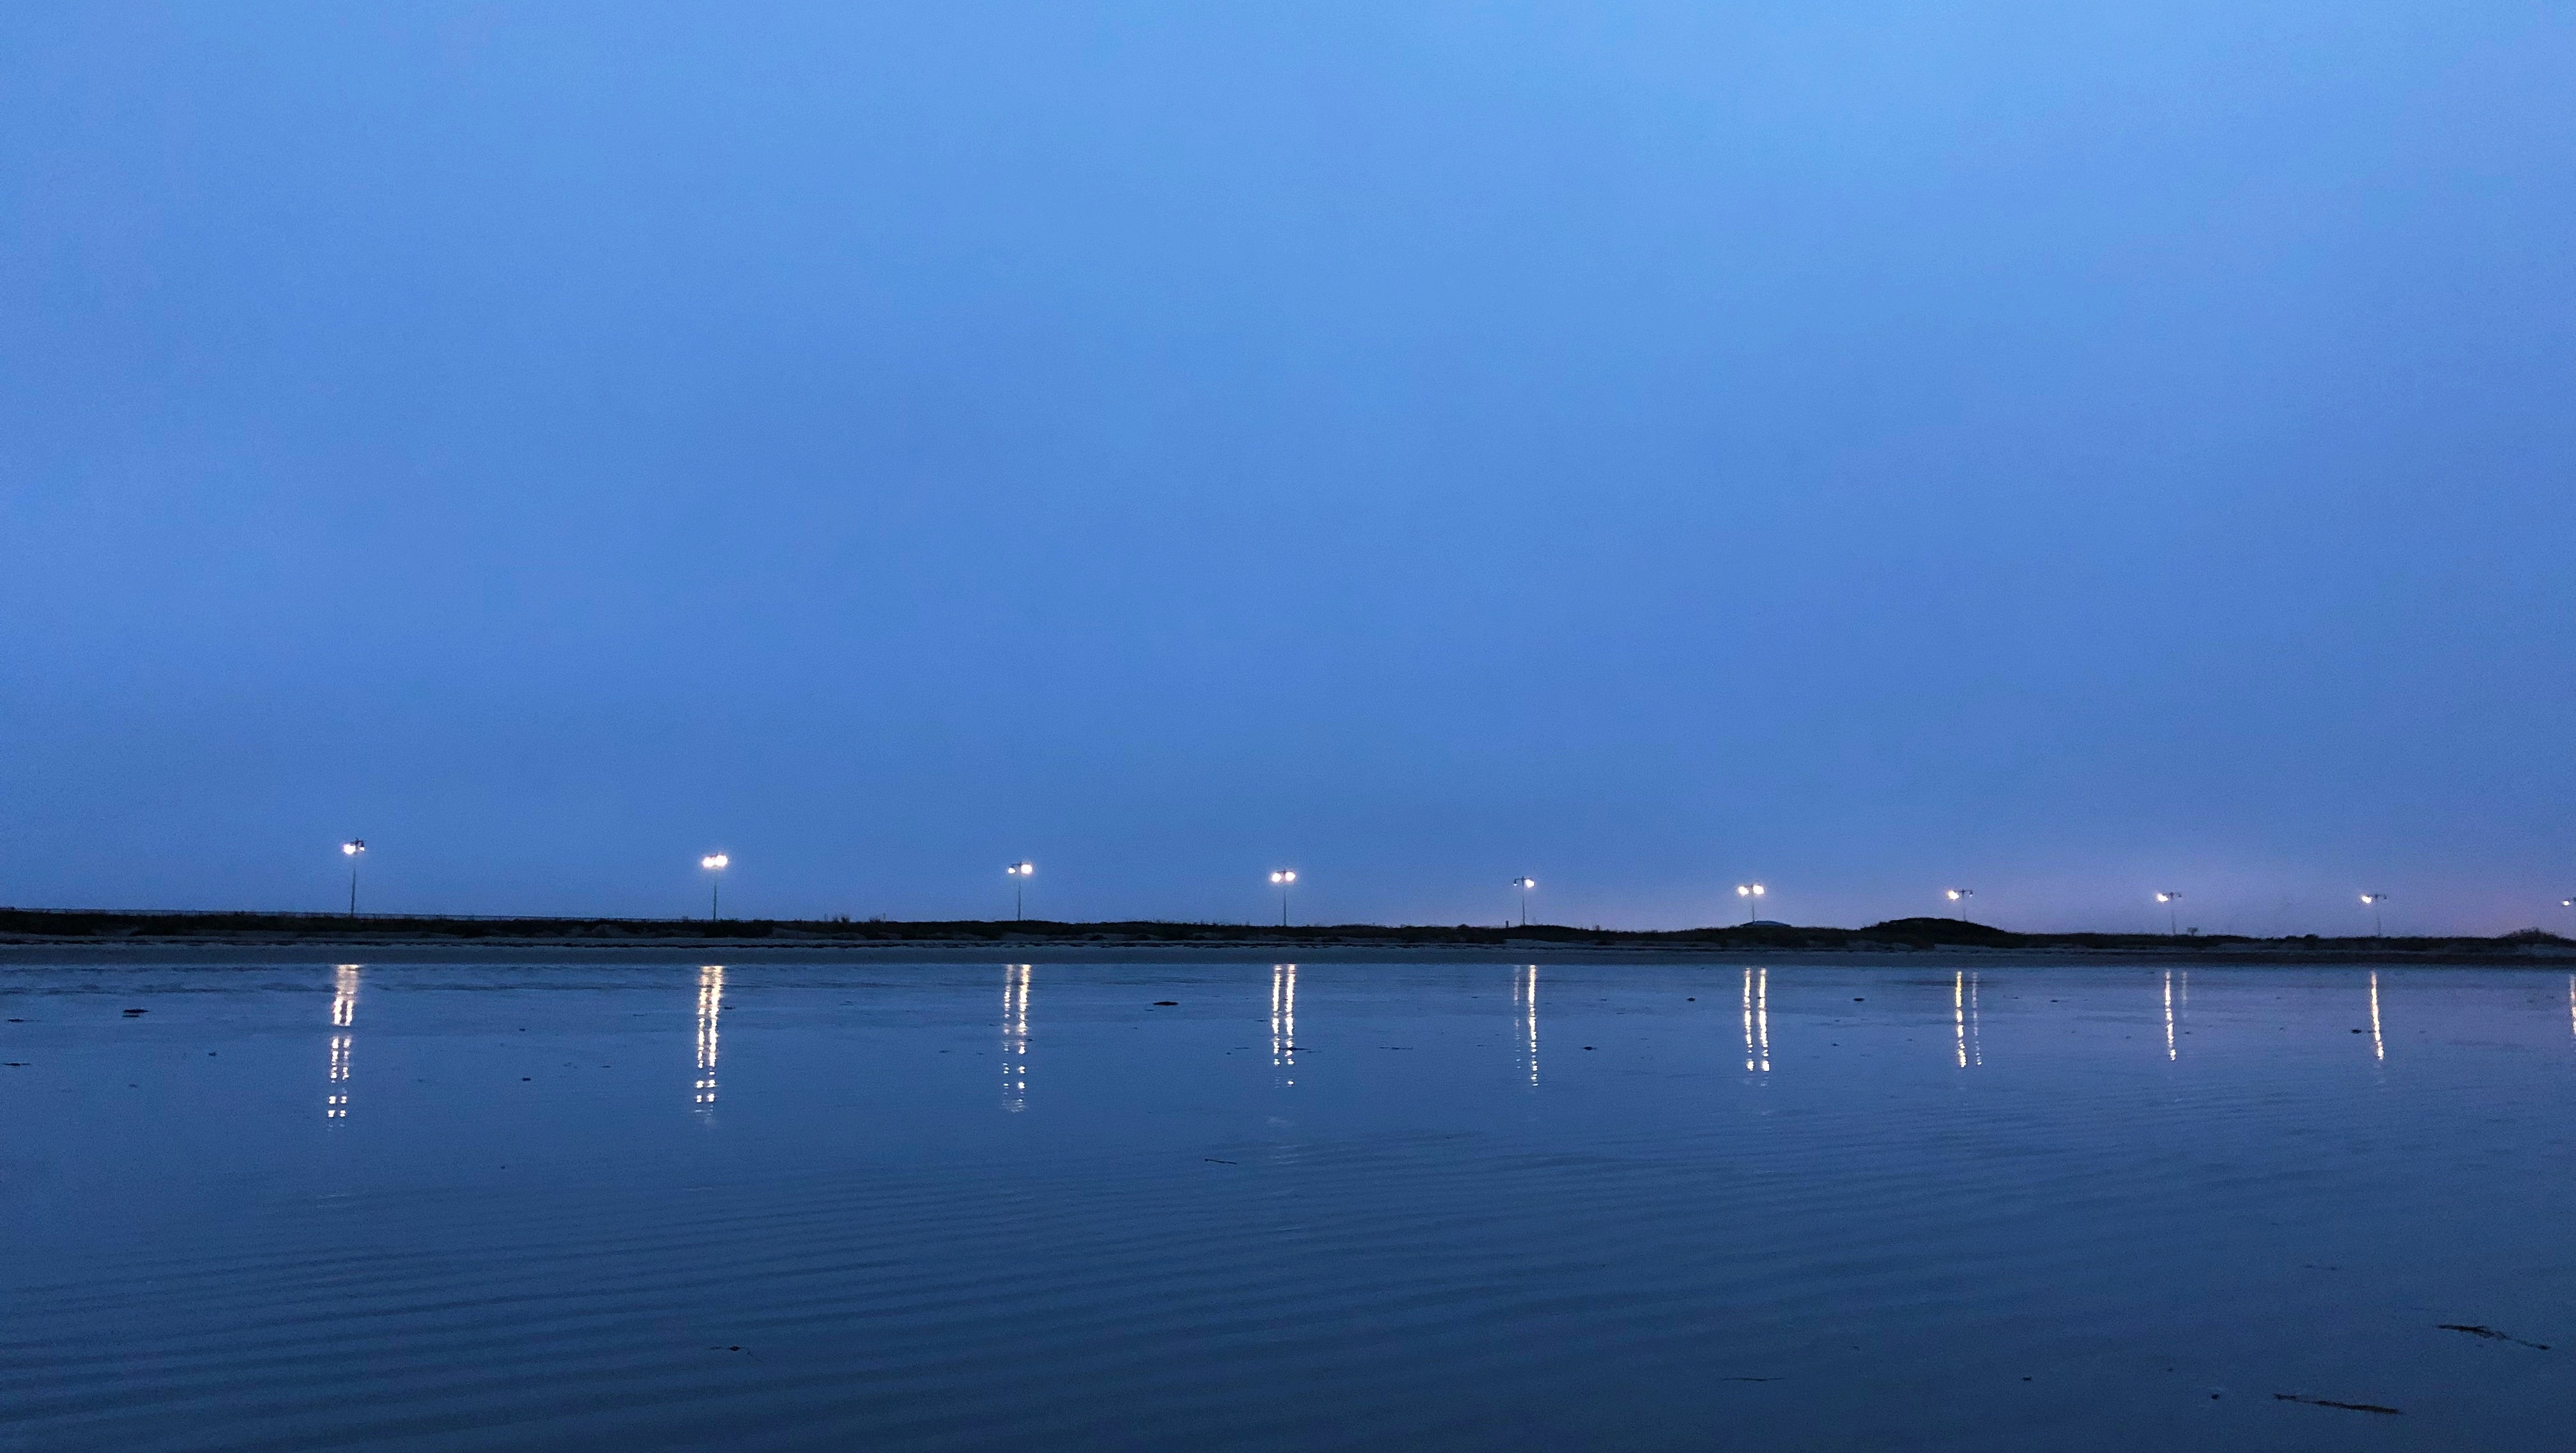 Photo - a row of lights by the sea